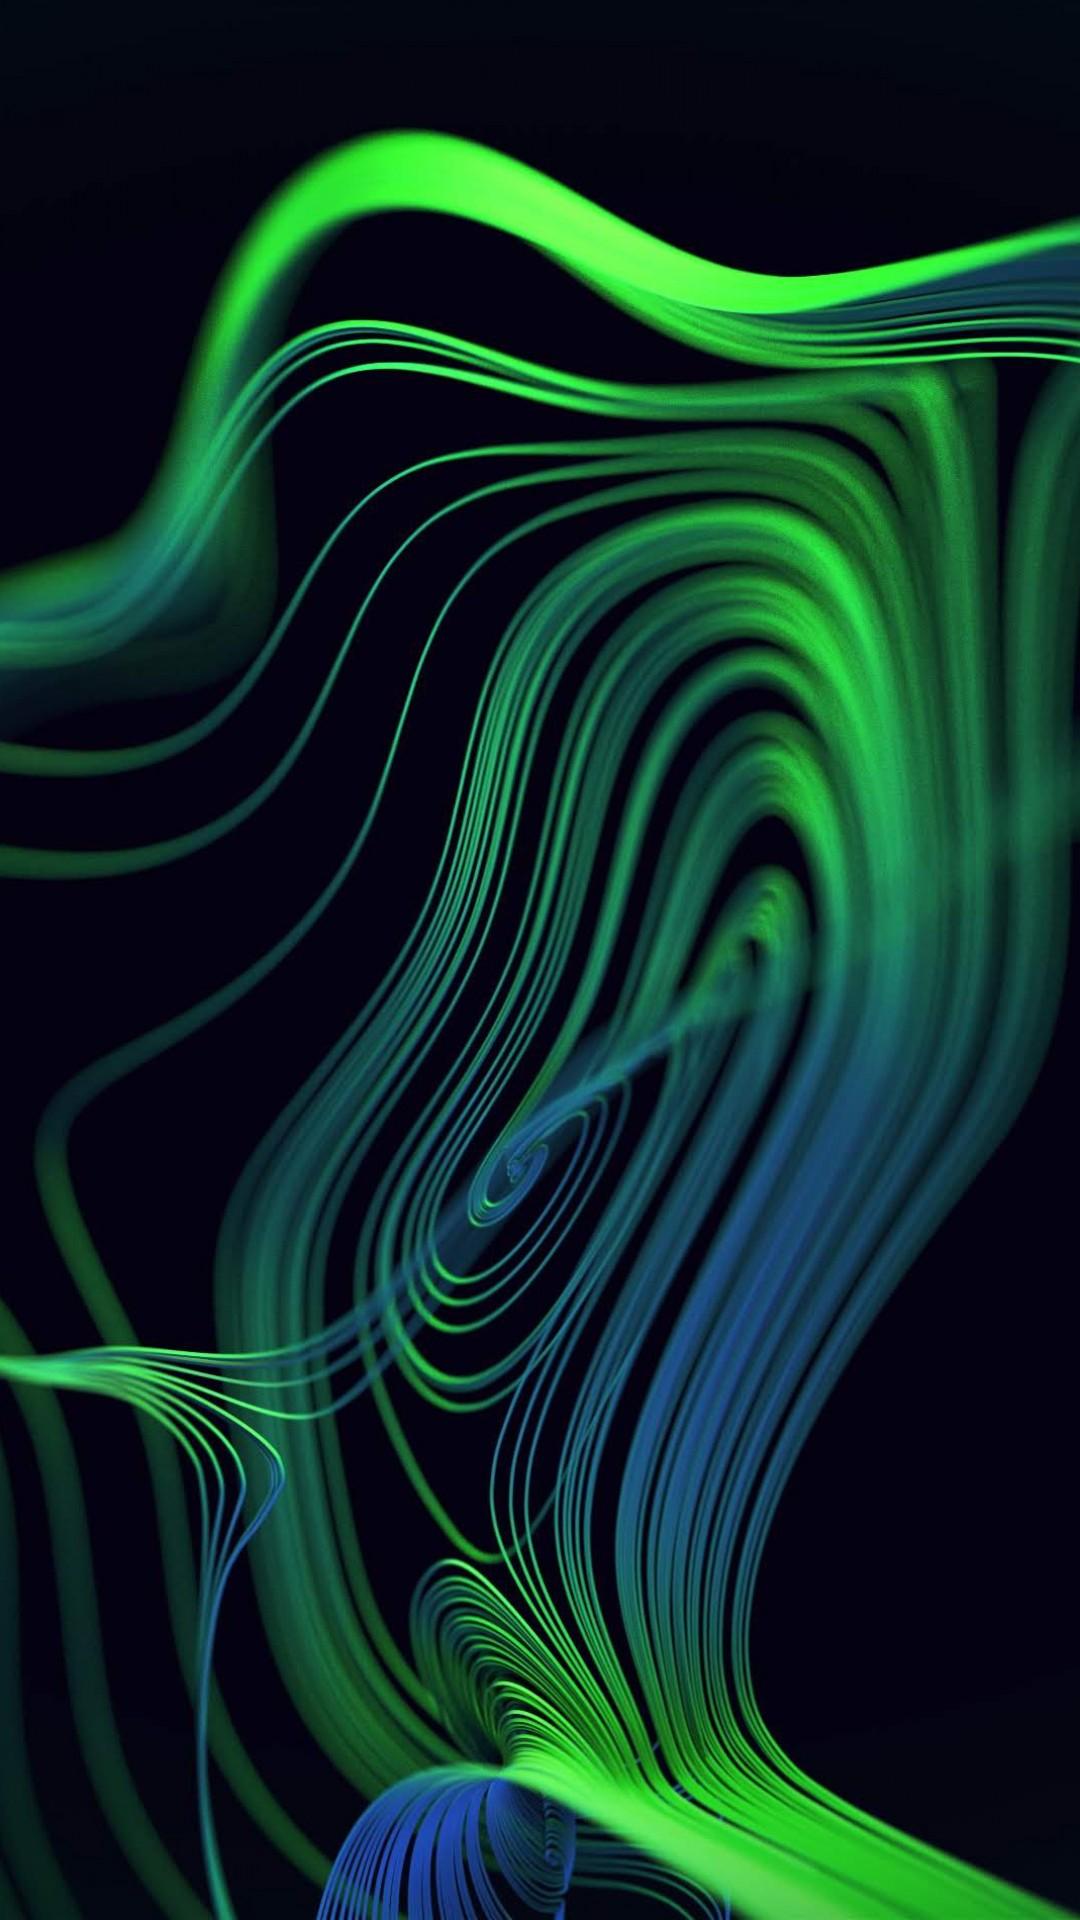 Wallpaper Razer Phone 2, abstract, colorful, HD, OS #20750